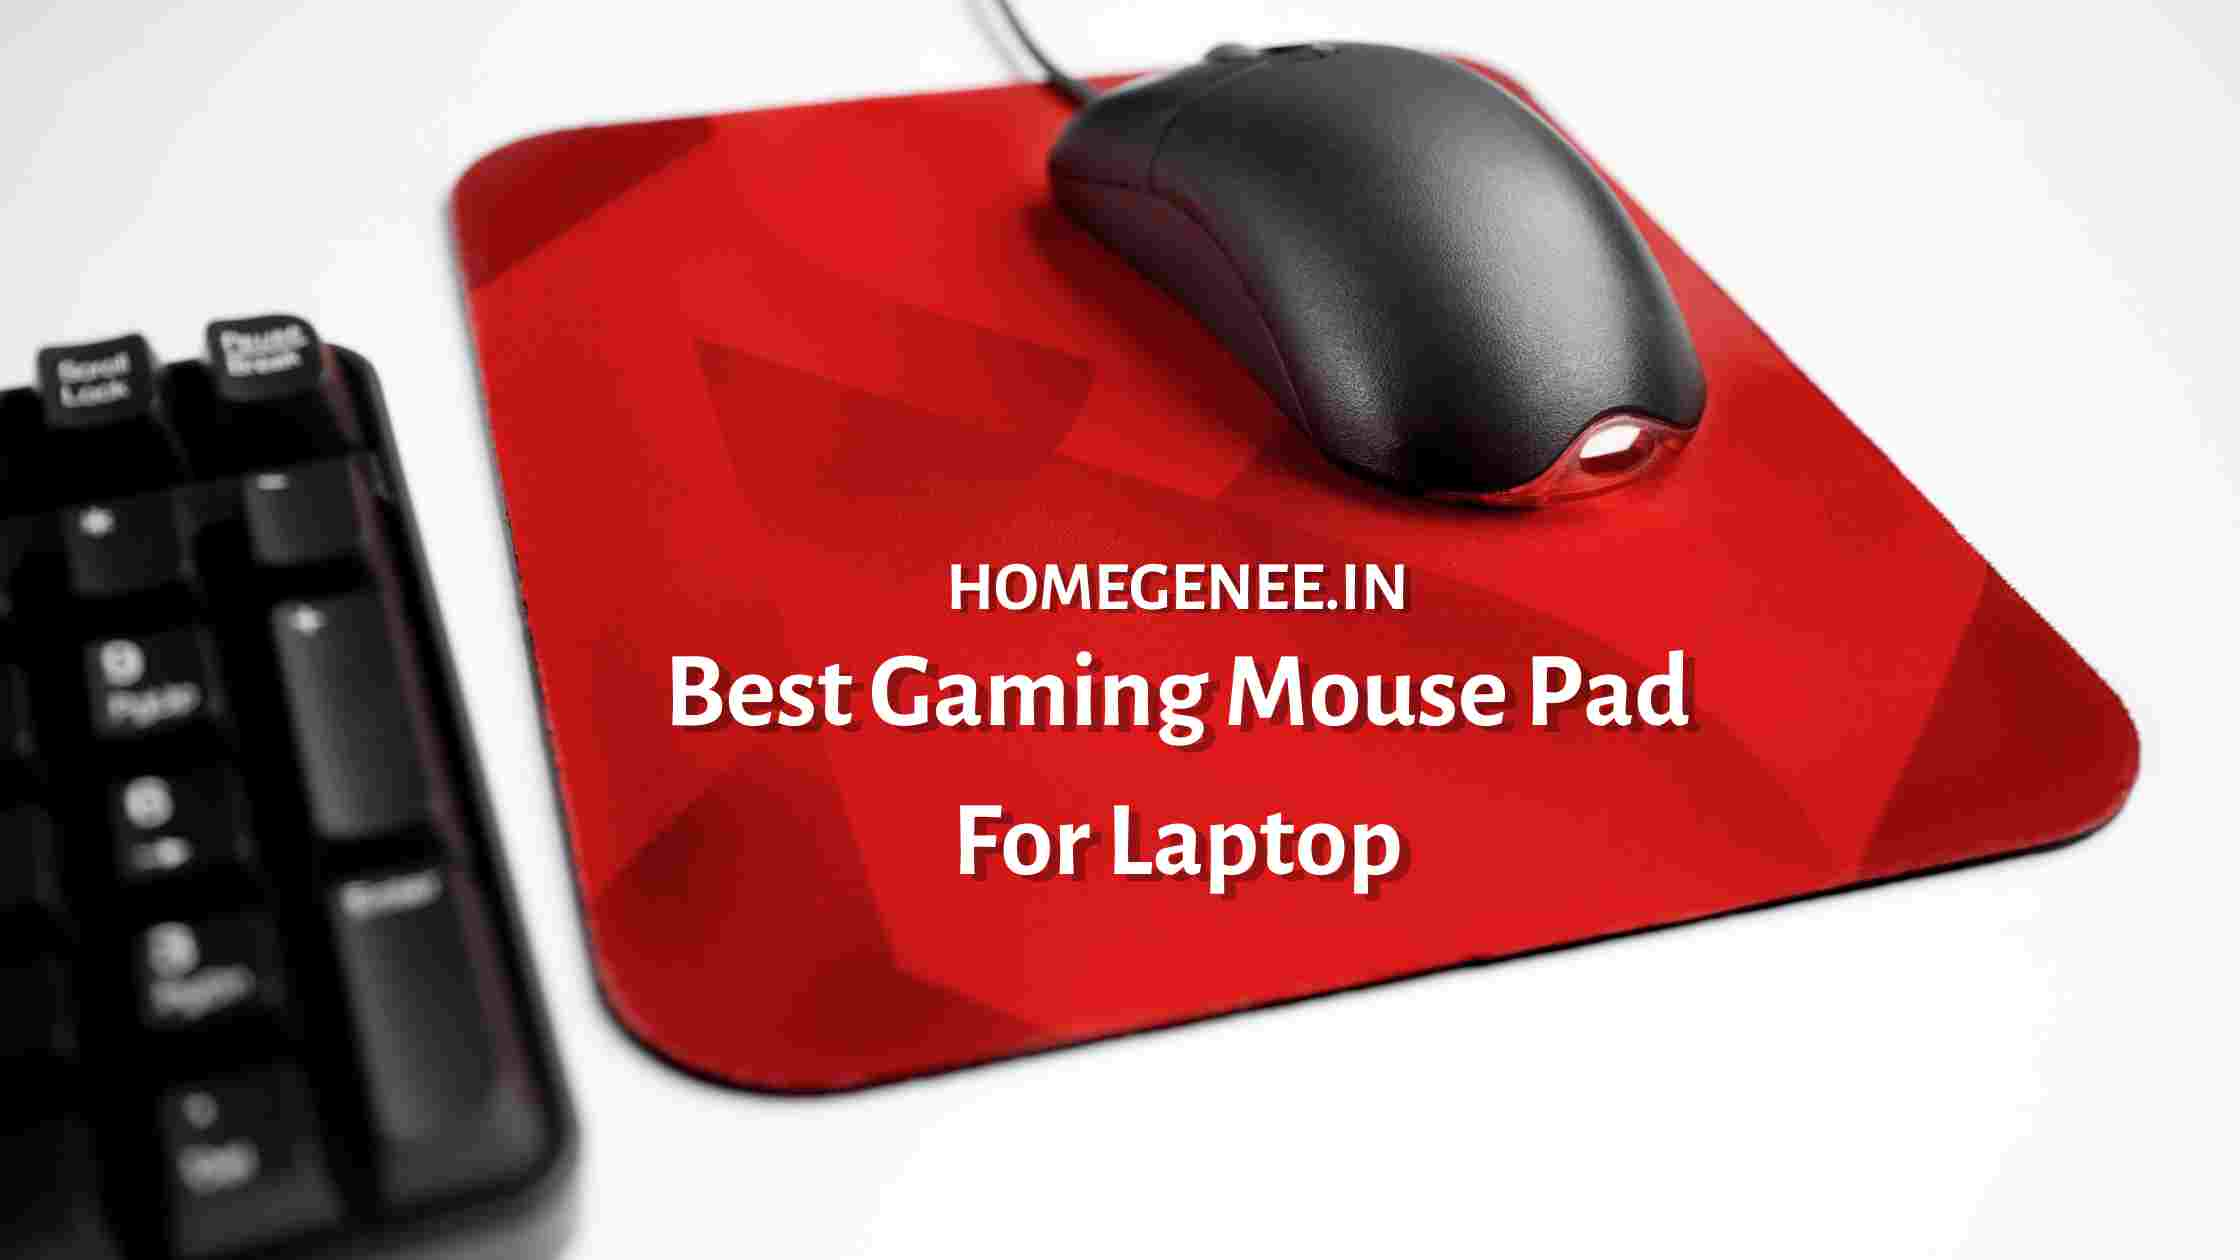 Best Gaming Mouse Pad For Laptop